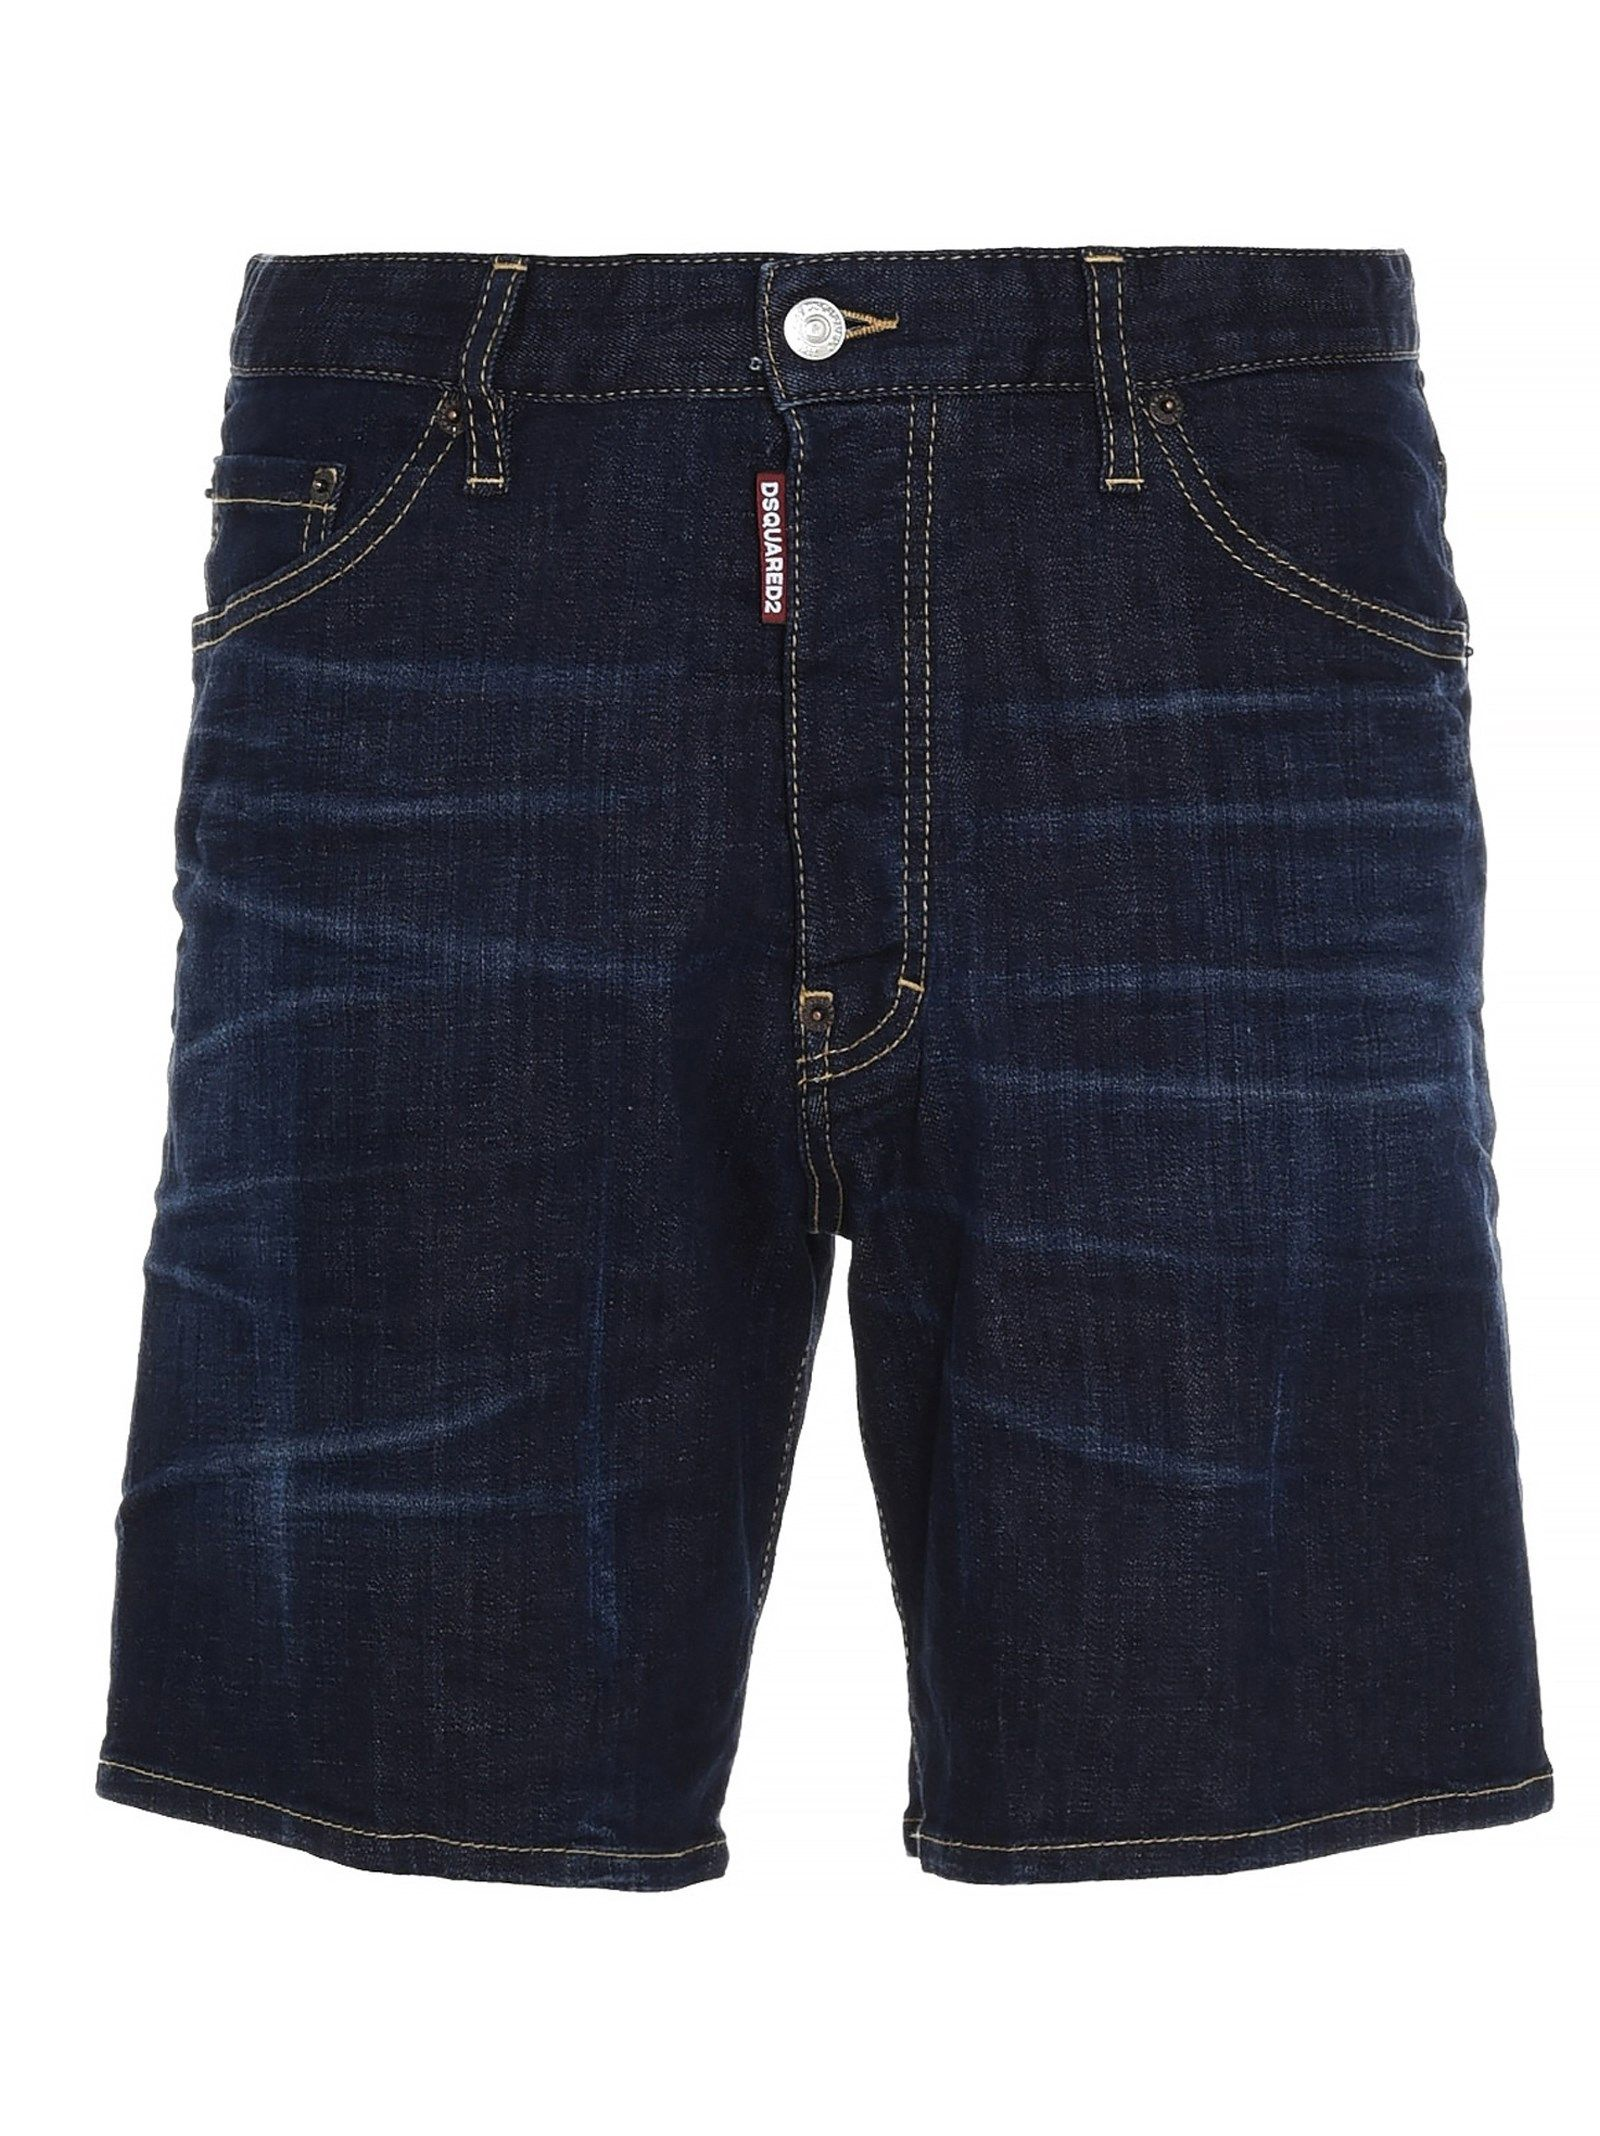 Dsquared2 Cottons DSQUARED2 MEN'S BLUE OTHER MATERIALS SHORTS